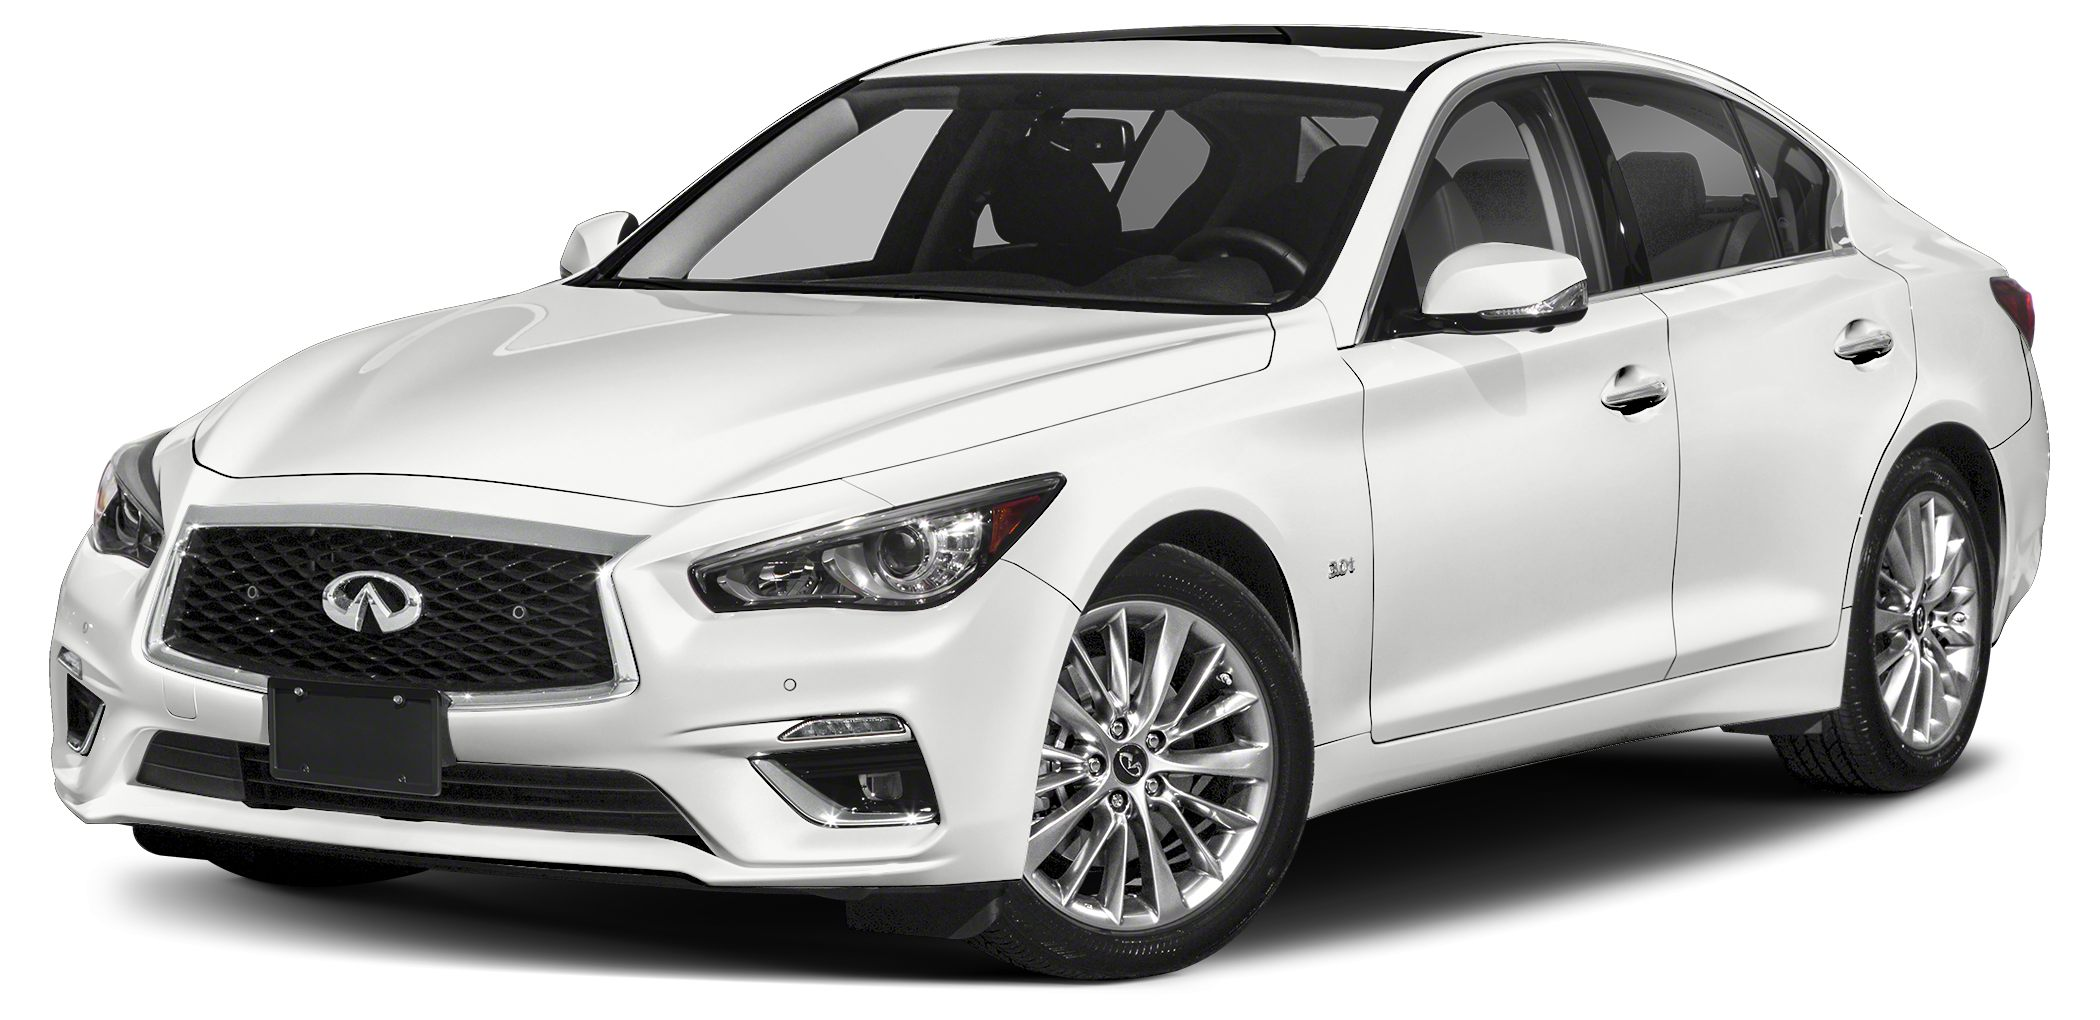 2018 INFINITI Q50 30T Luxe Optional equipment includes Illuminated Kick Plates Cargo Package L